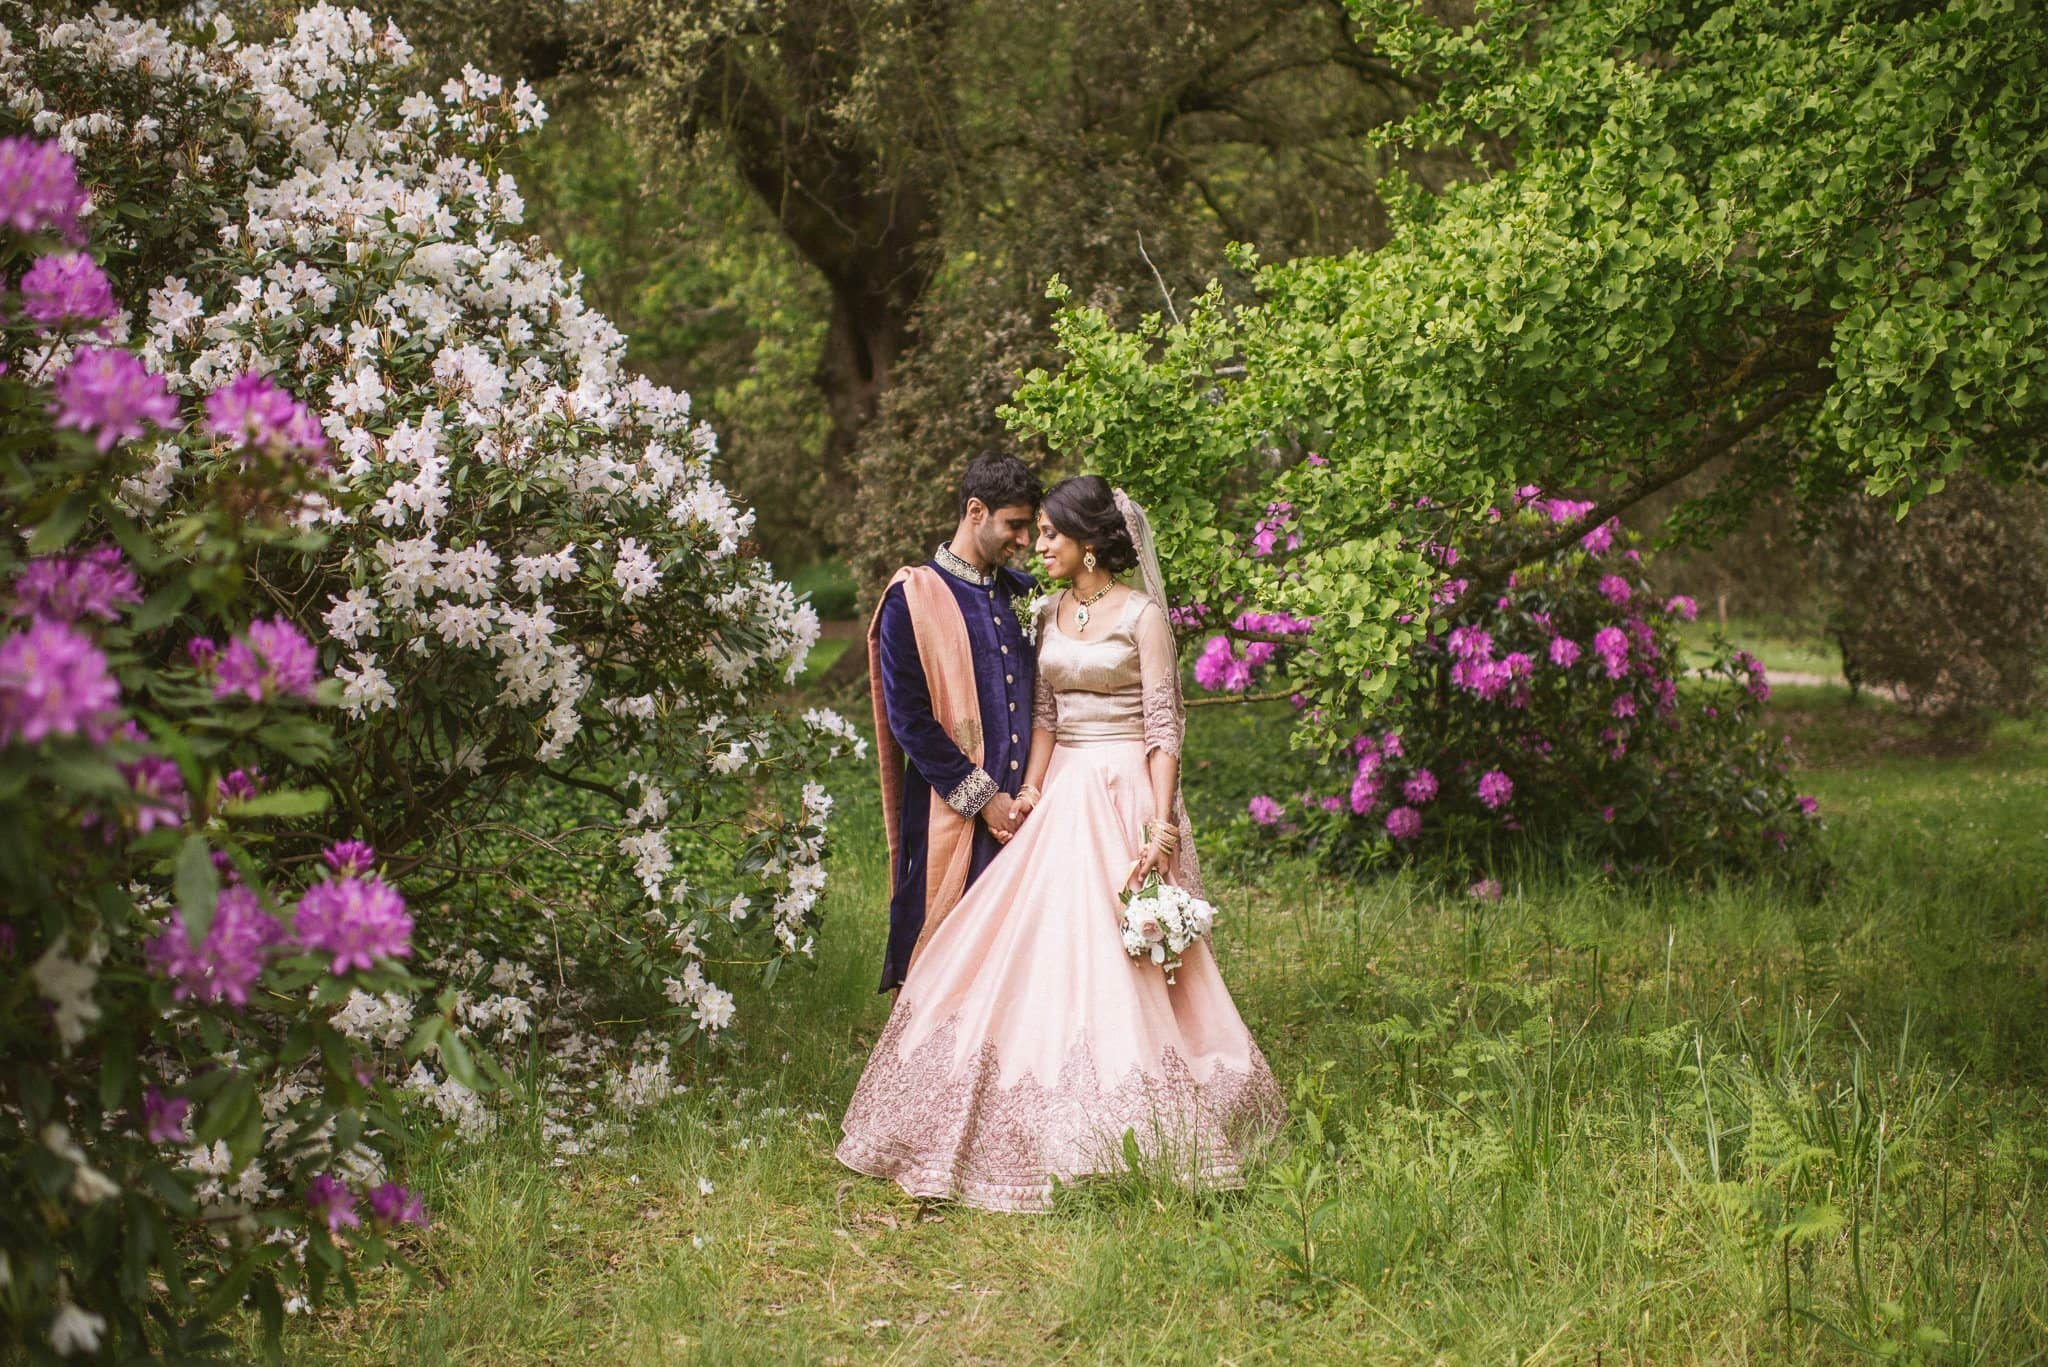 Sorayya and Usman gaze at each other surrounded by white and purple flowers in the grounds of Fulham Palace